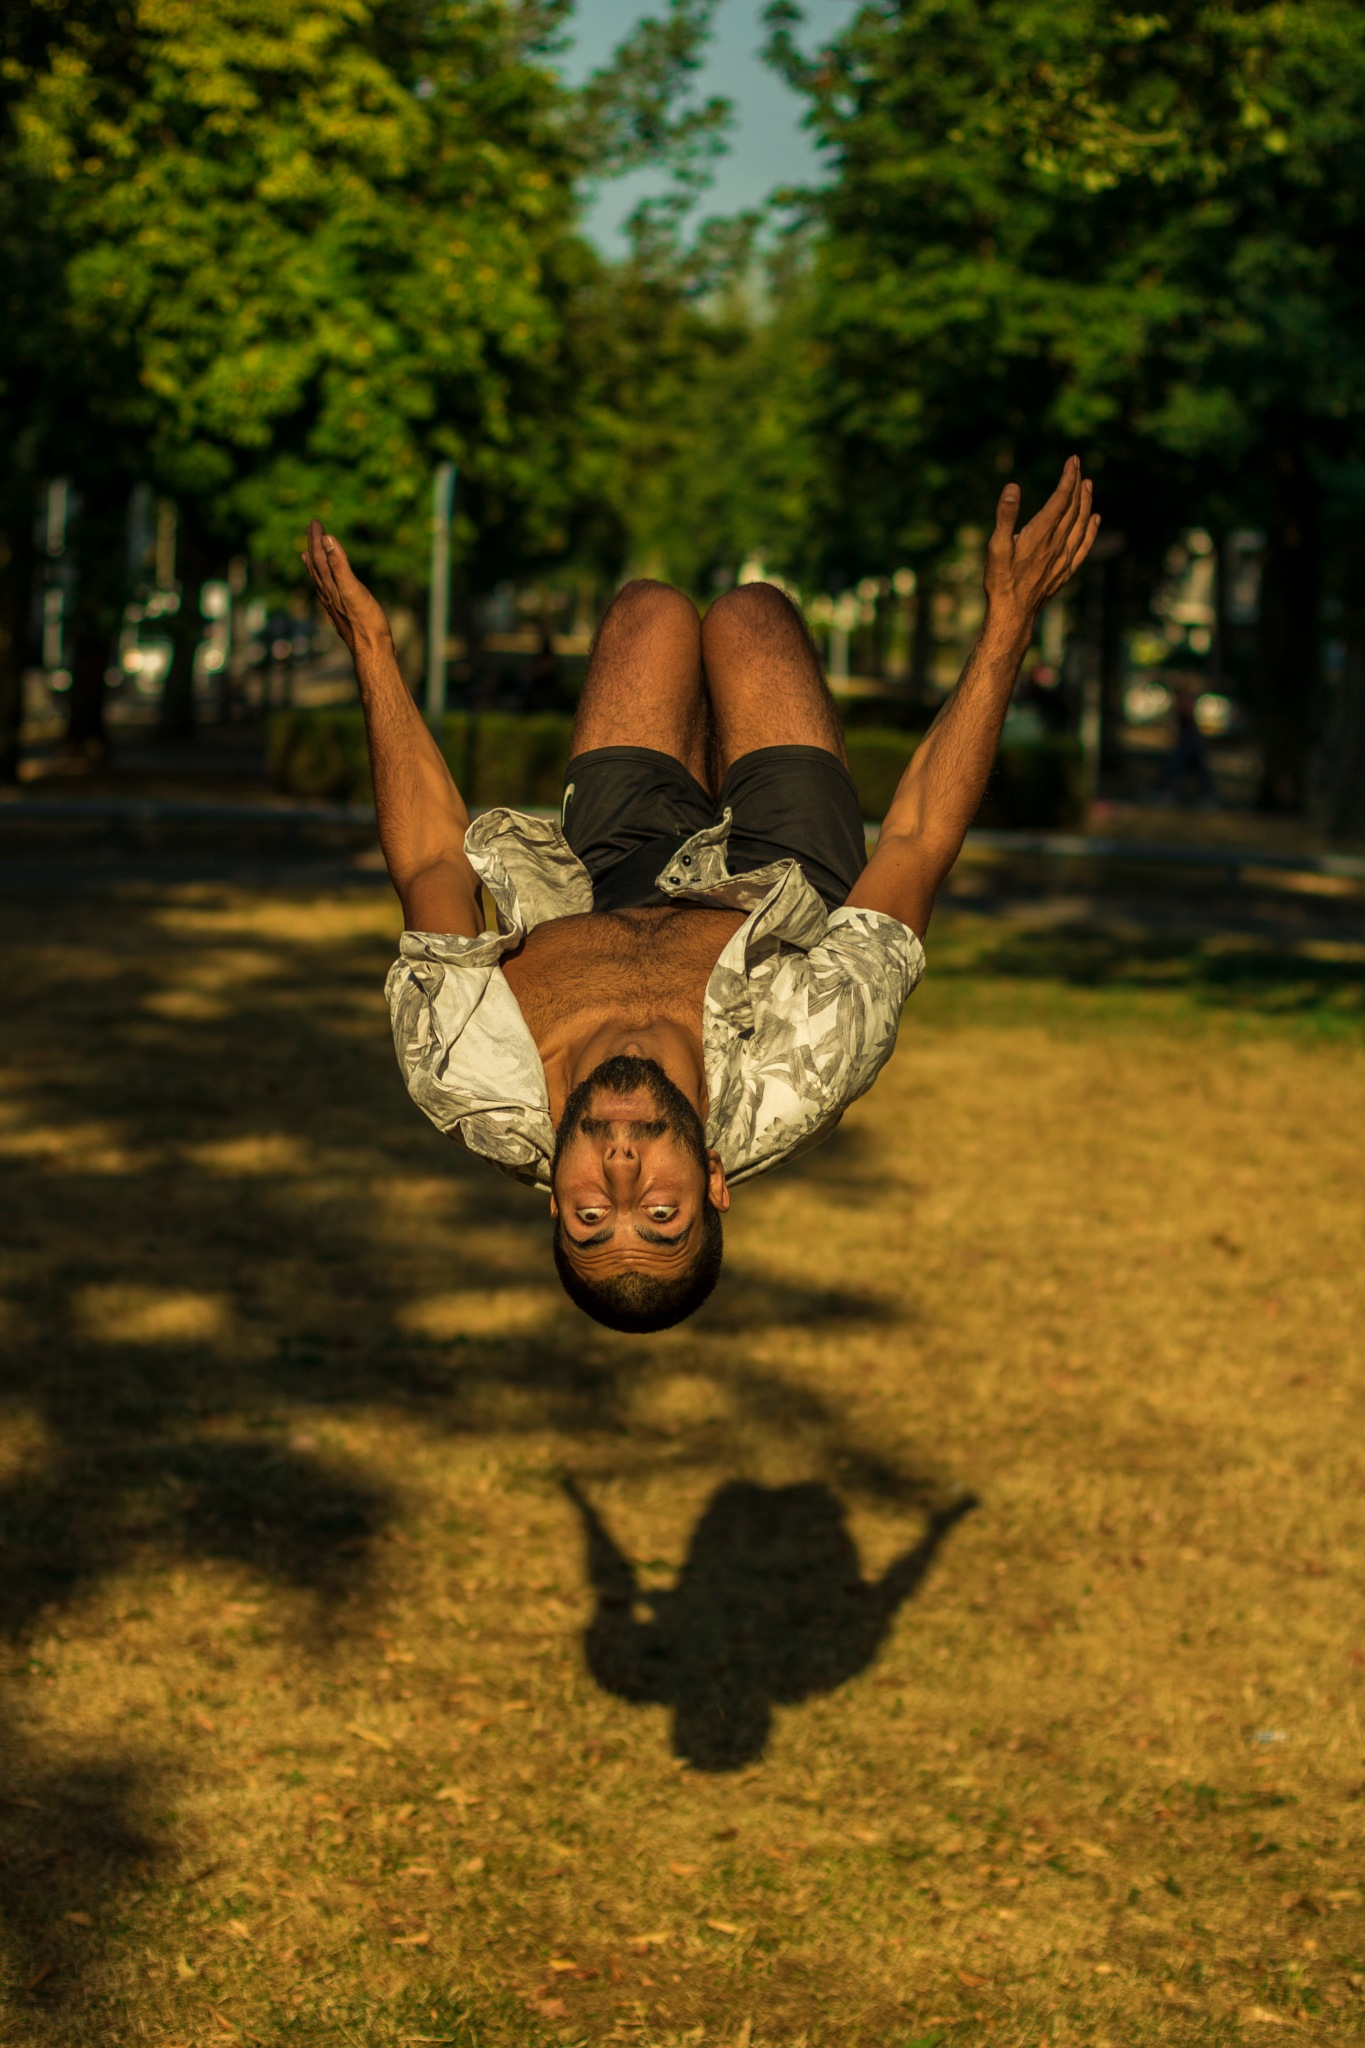 Kevin doing a backflip. by Ward Kuipers